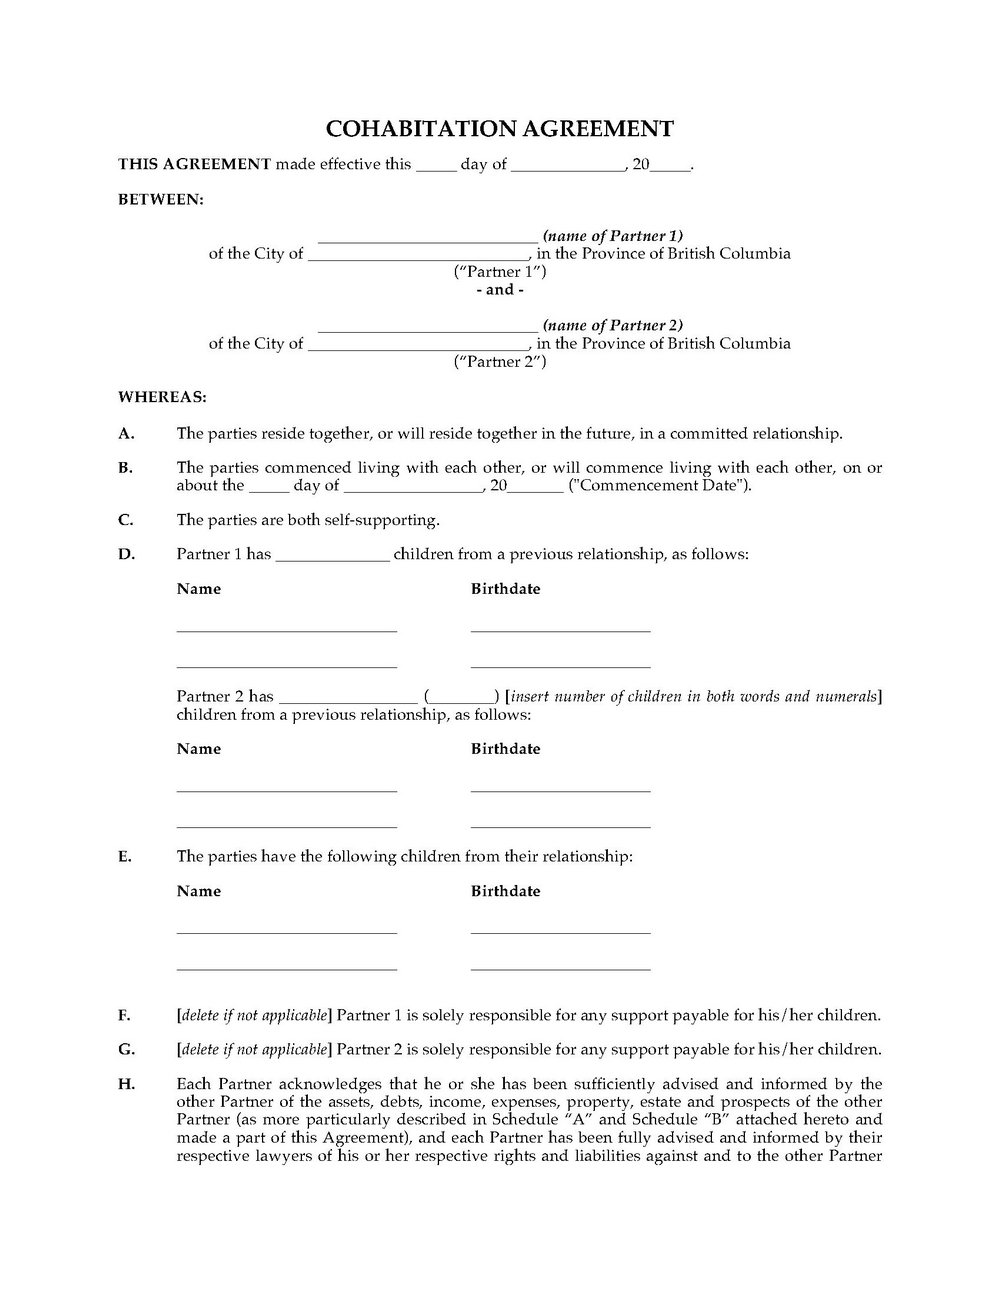 Cohabitation Agreement Form